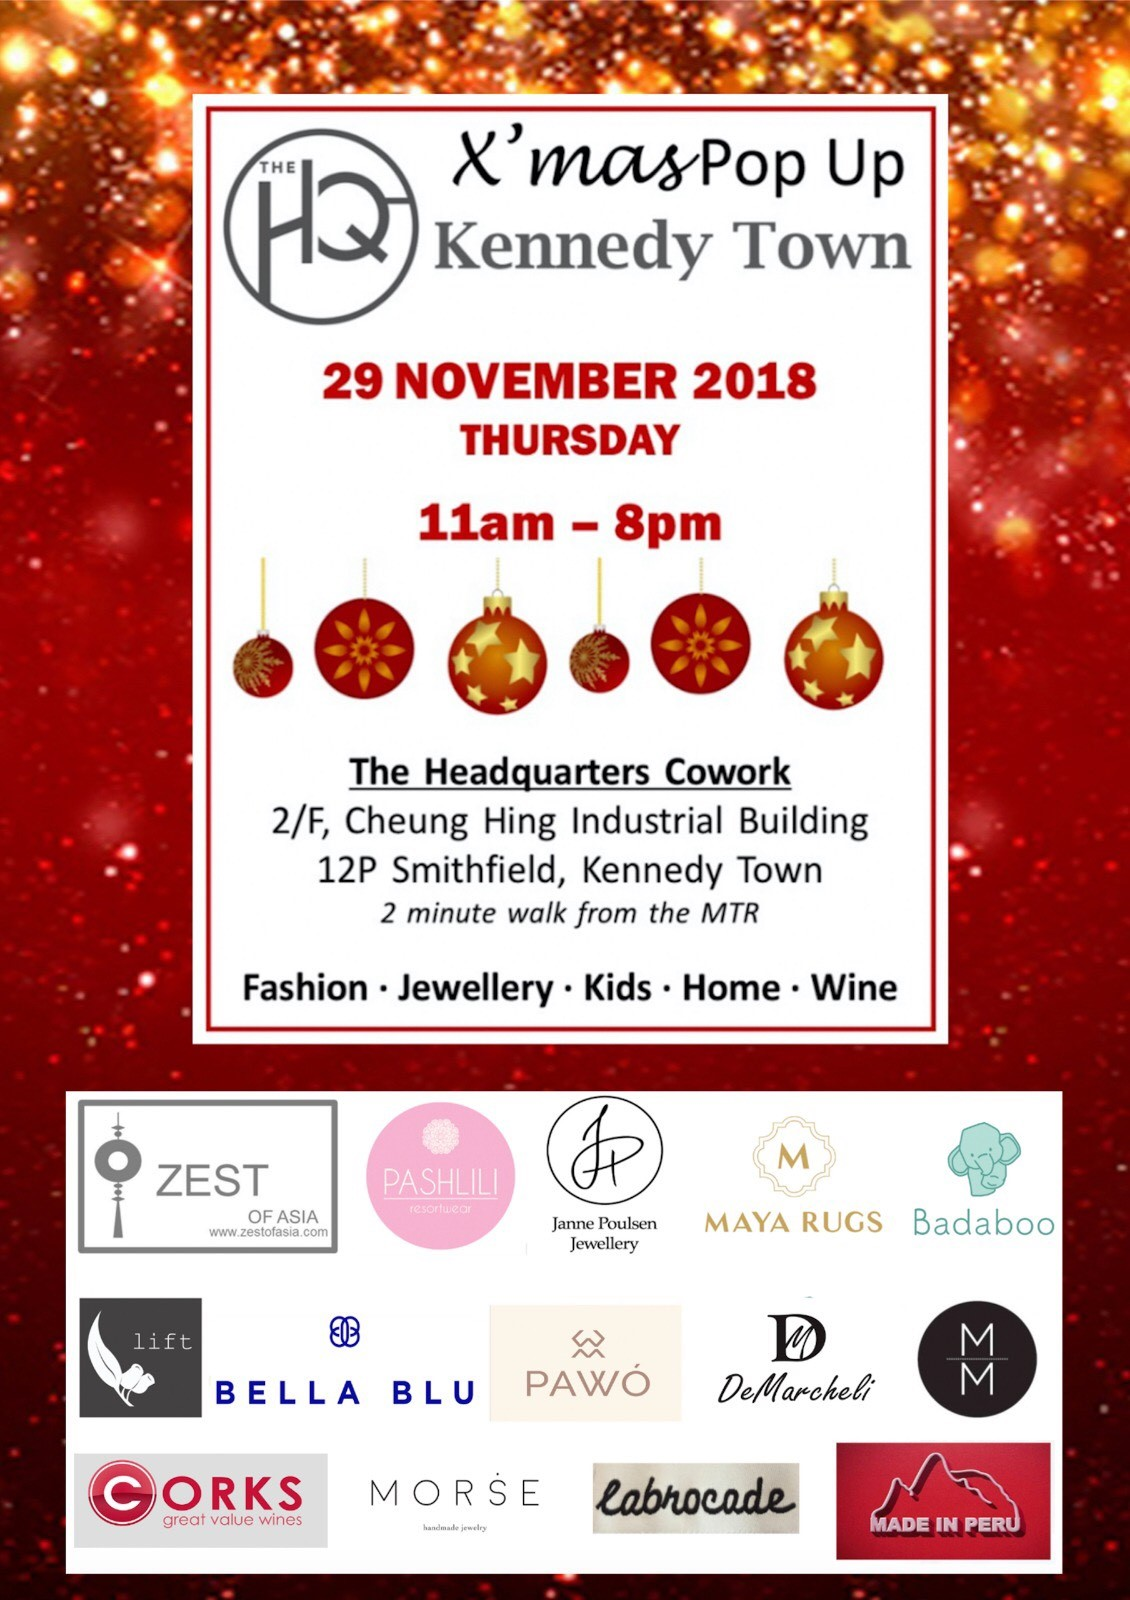 X'mas Pop up event in The Headquarters Cowork - Thu 11am-8pm on 29Nov2018